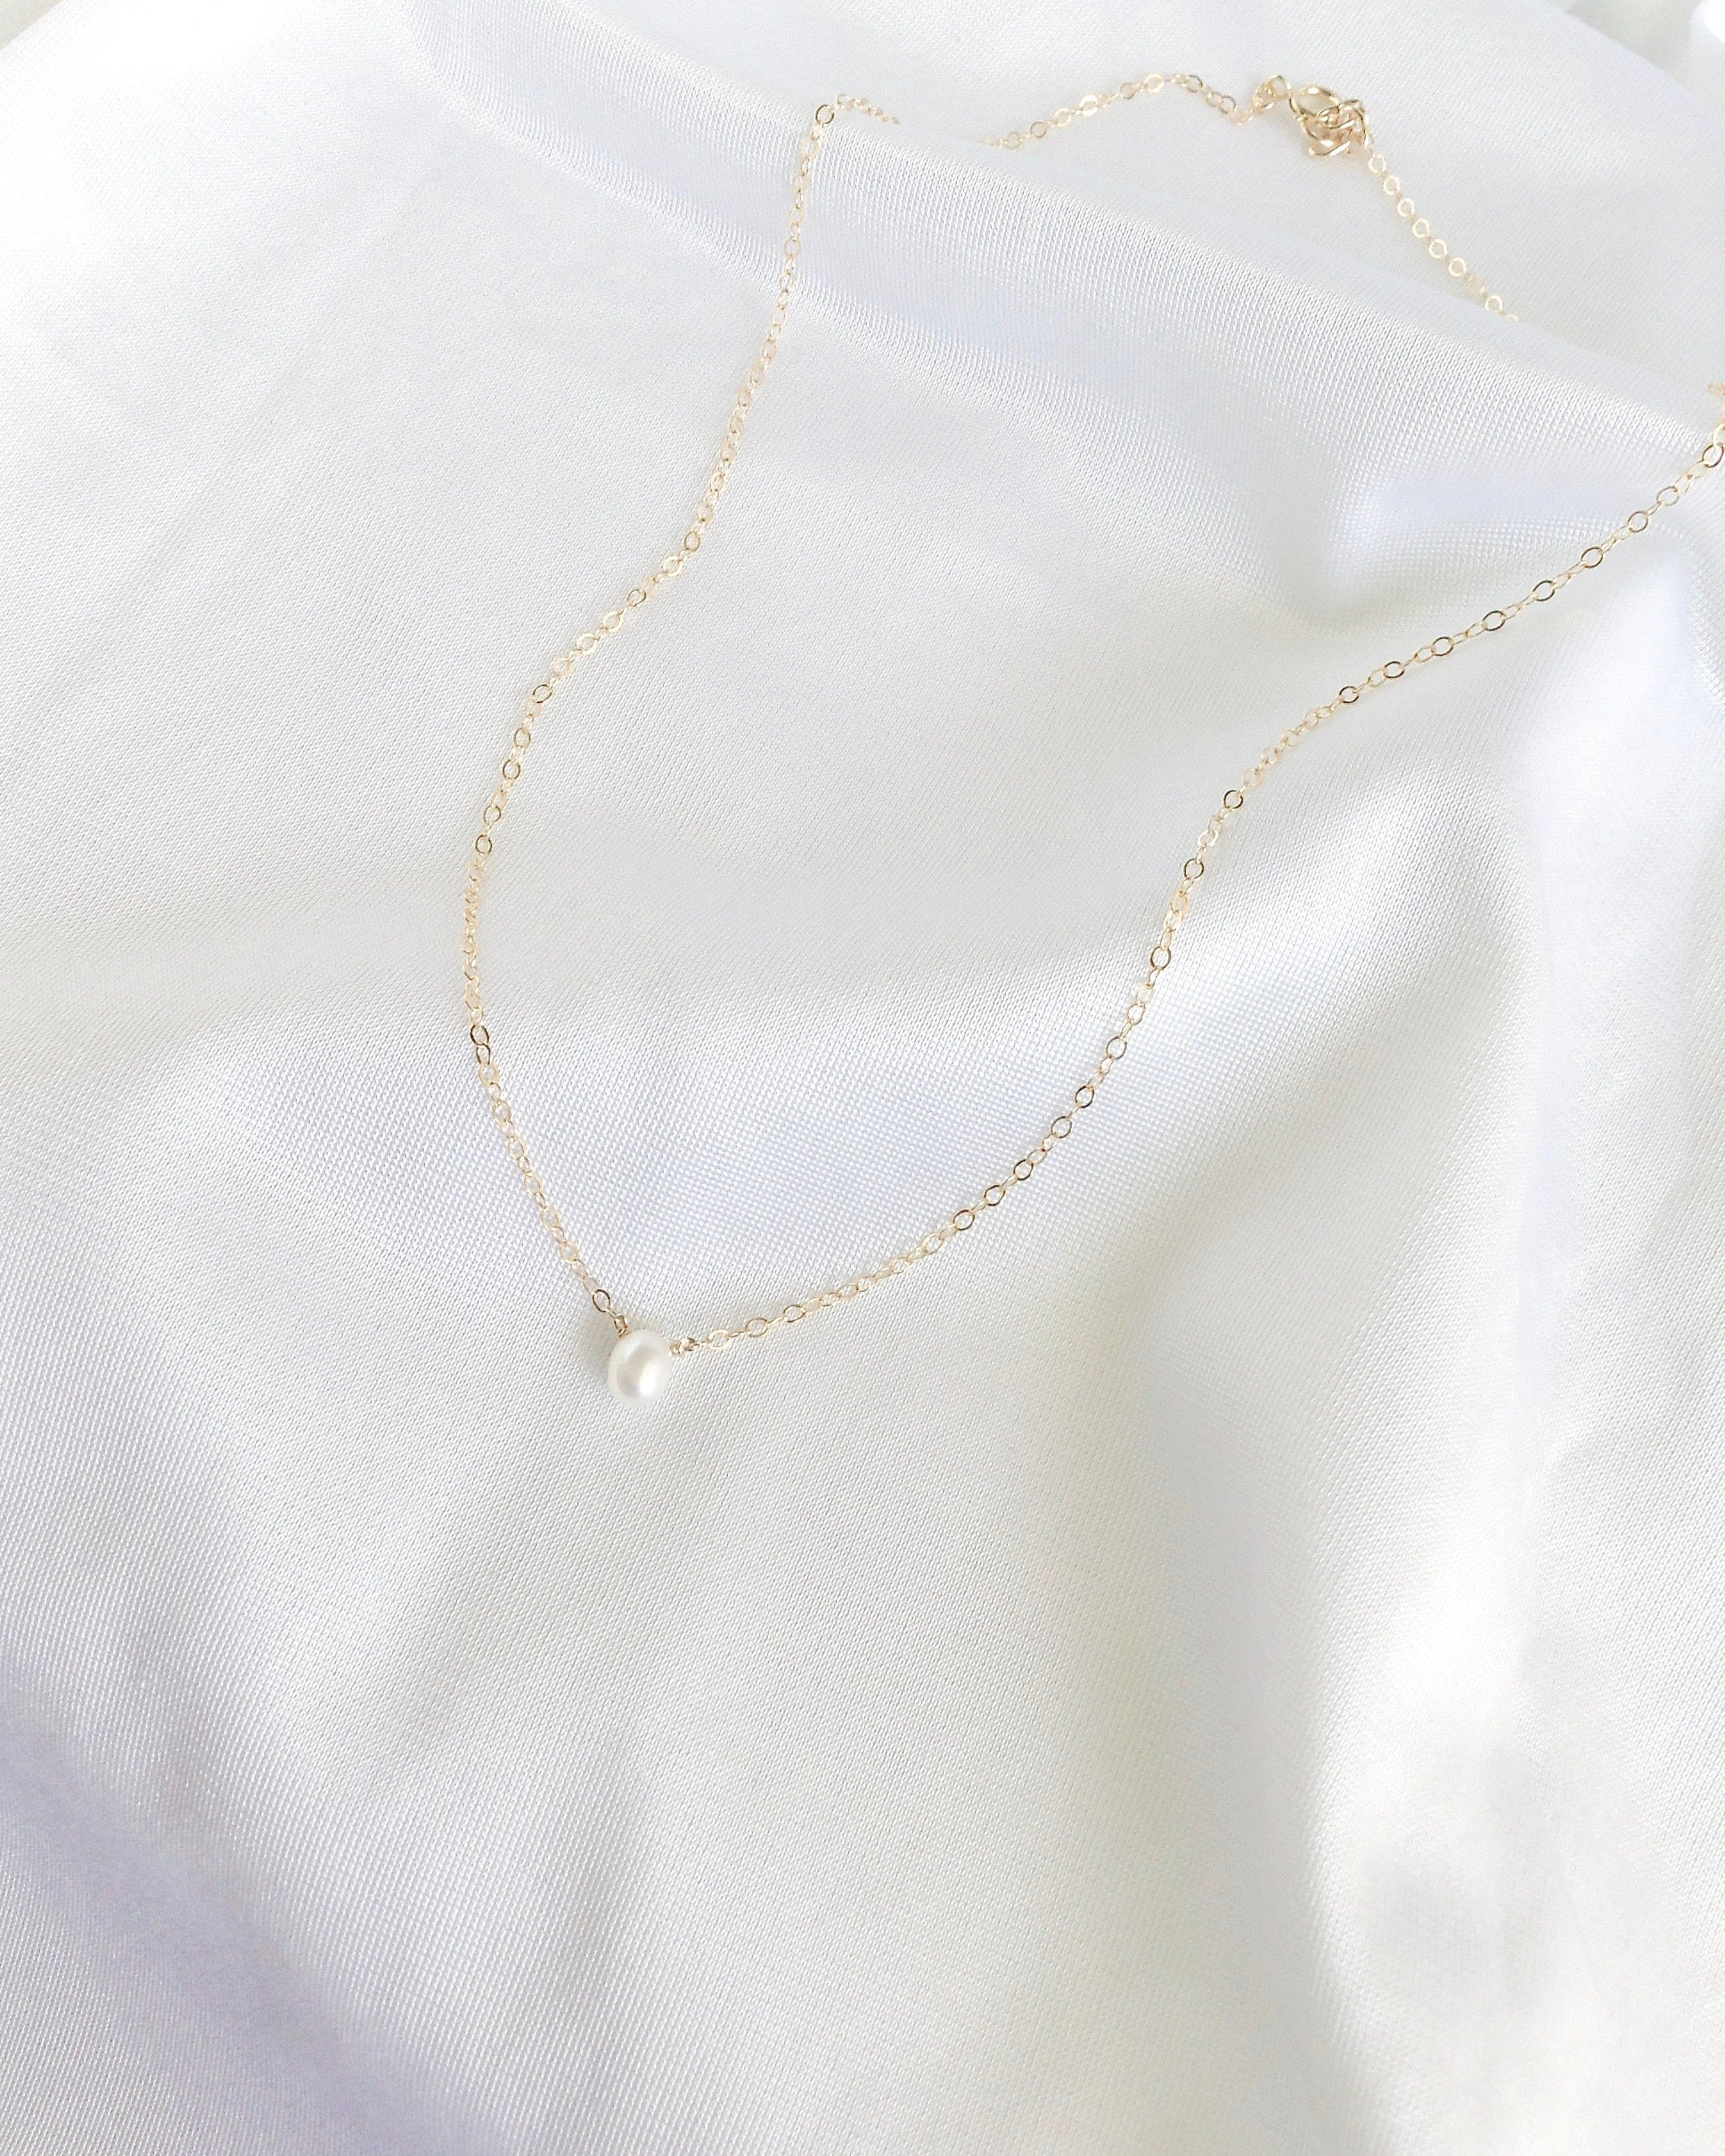 Simple Small Pearl Necklace In Gold Filled or Sterling Silver | Dainty Jewelry | IB Jewelry